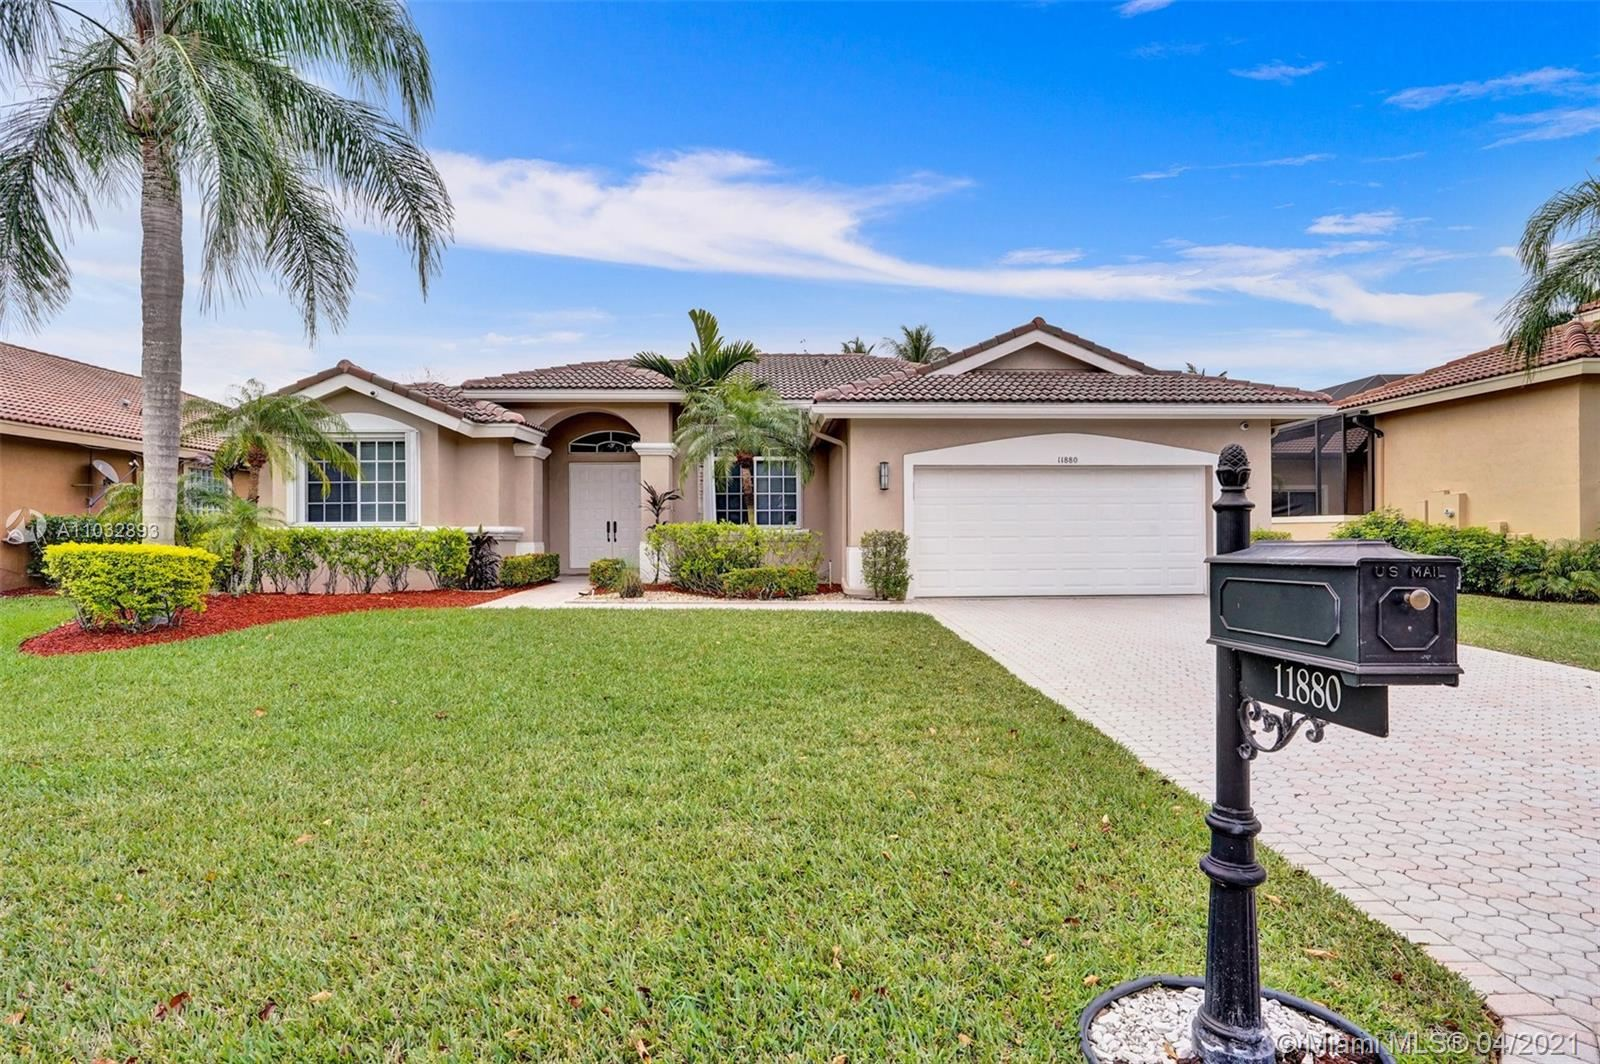 11880 NW 3rd Dr, Coral Springs, FL 33071 - #: A11032893